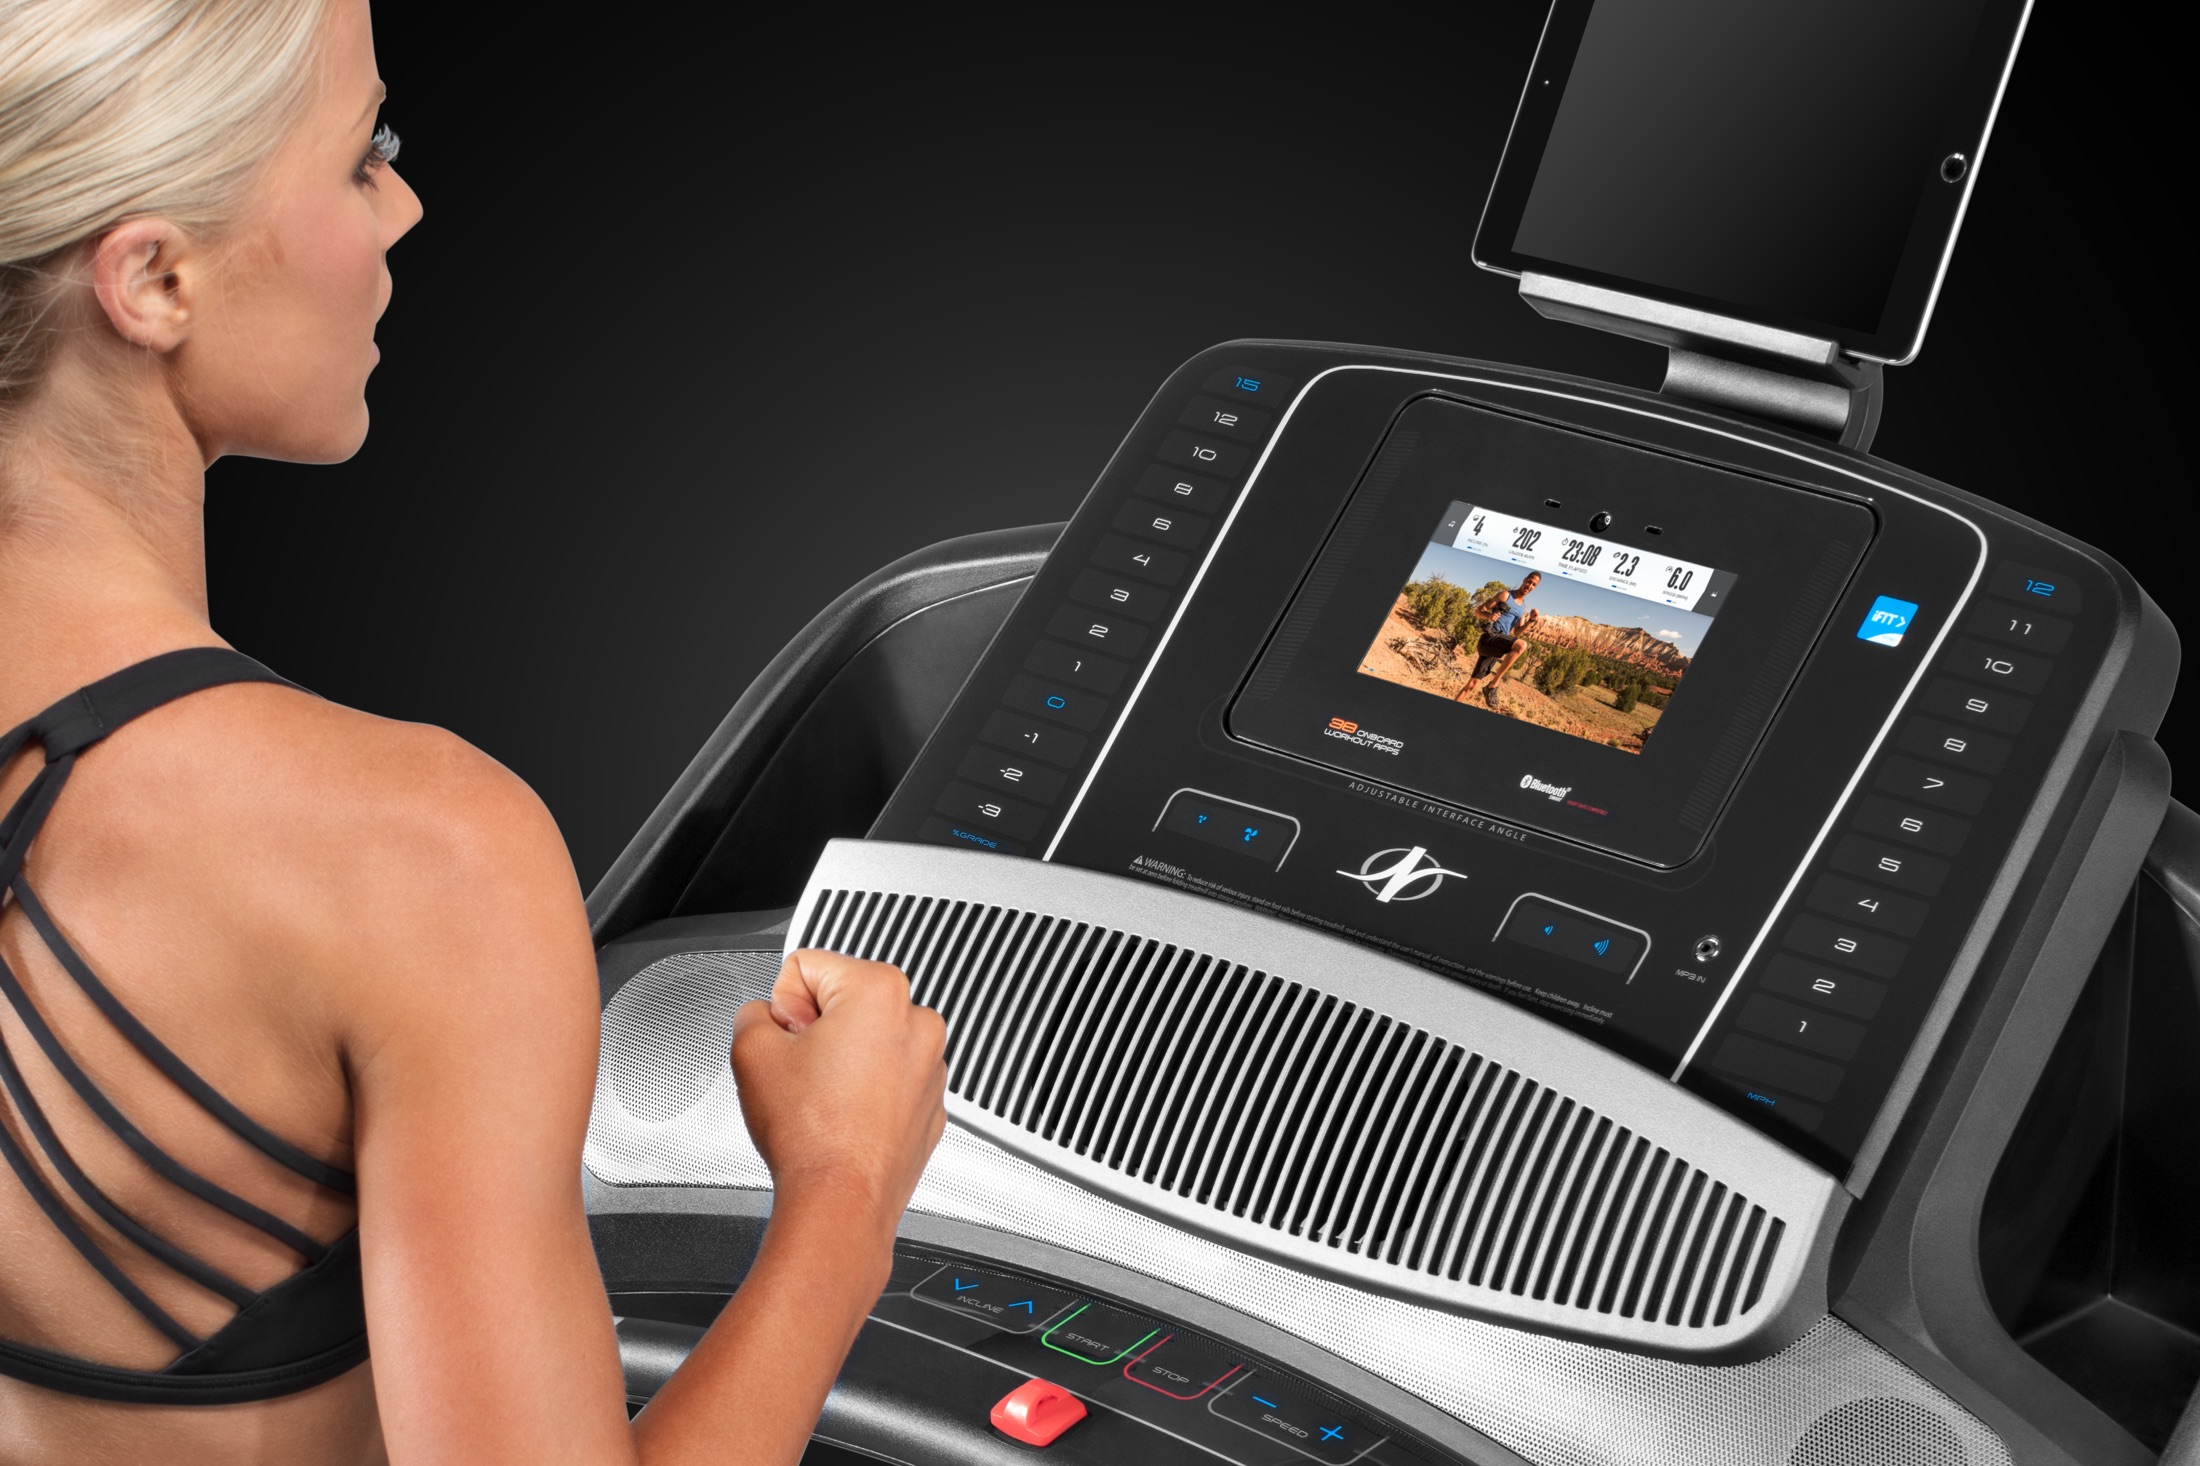 NordicTrack Commercial 1750 Treadmill Review – #1 Best Buy